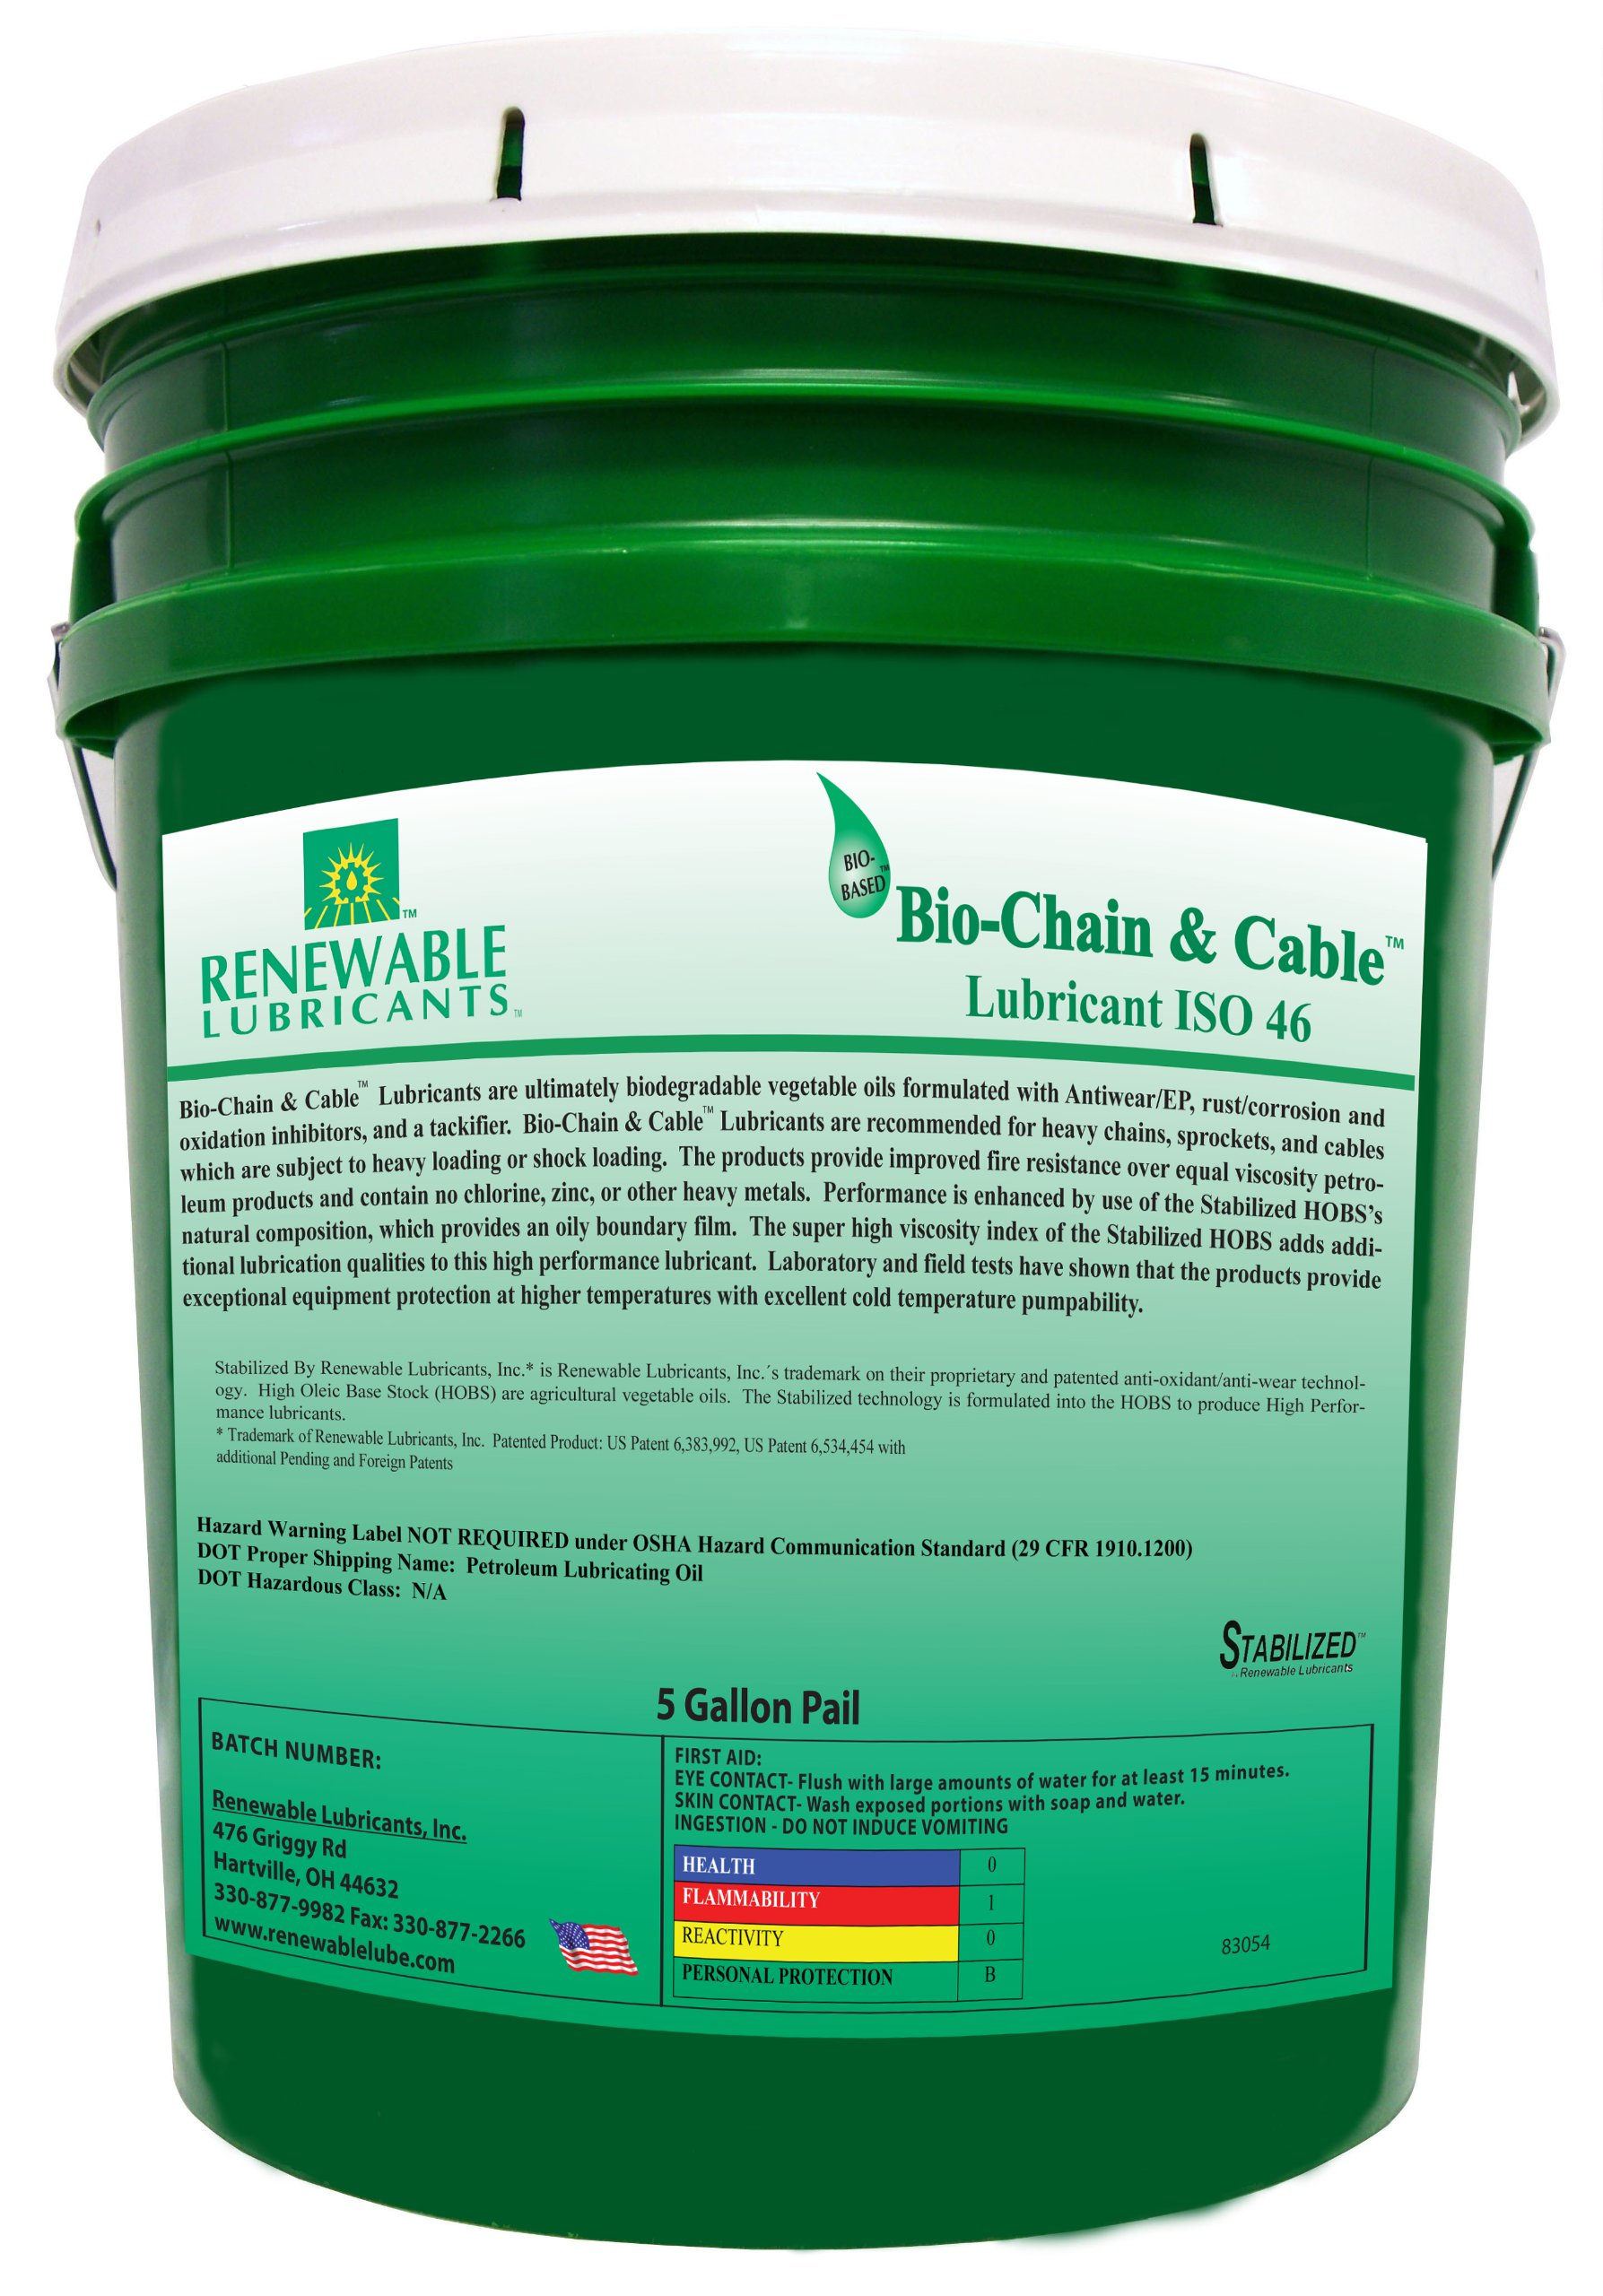 Renewable Lubricants Bio-Chain and Cable ISO 46 Lubricant Oil, 5 Gallon Pail